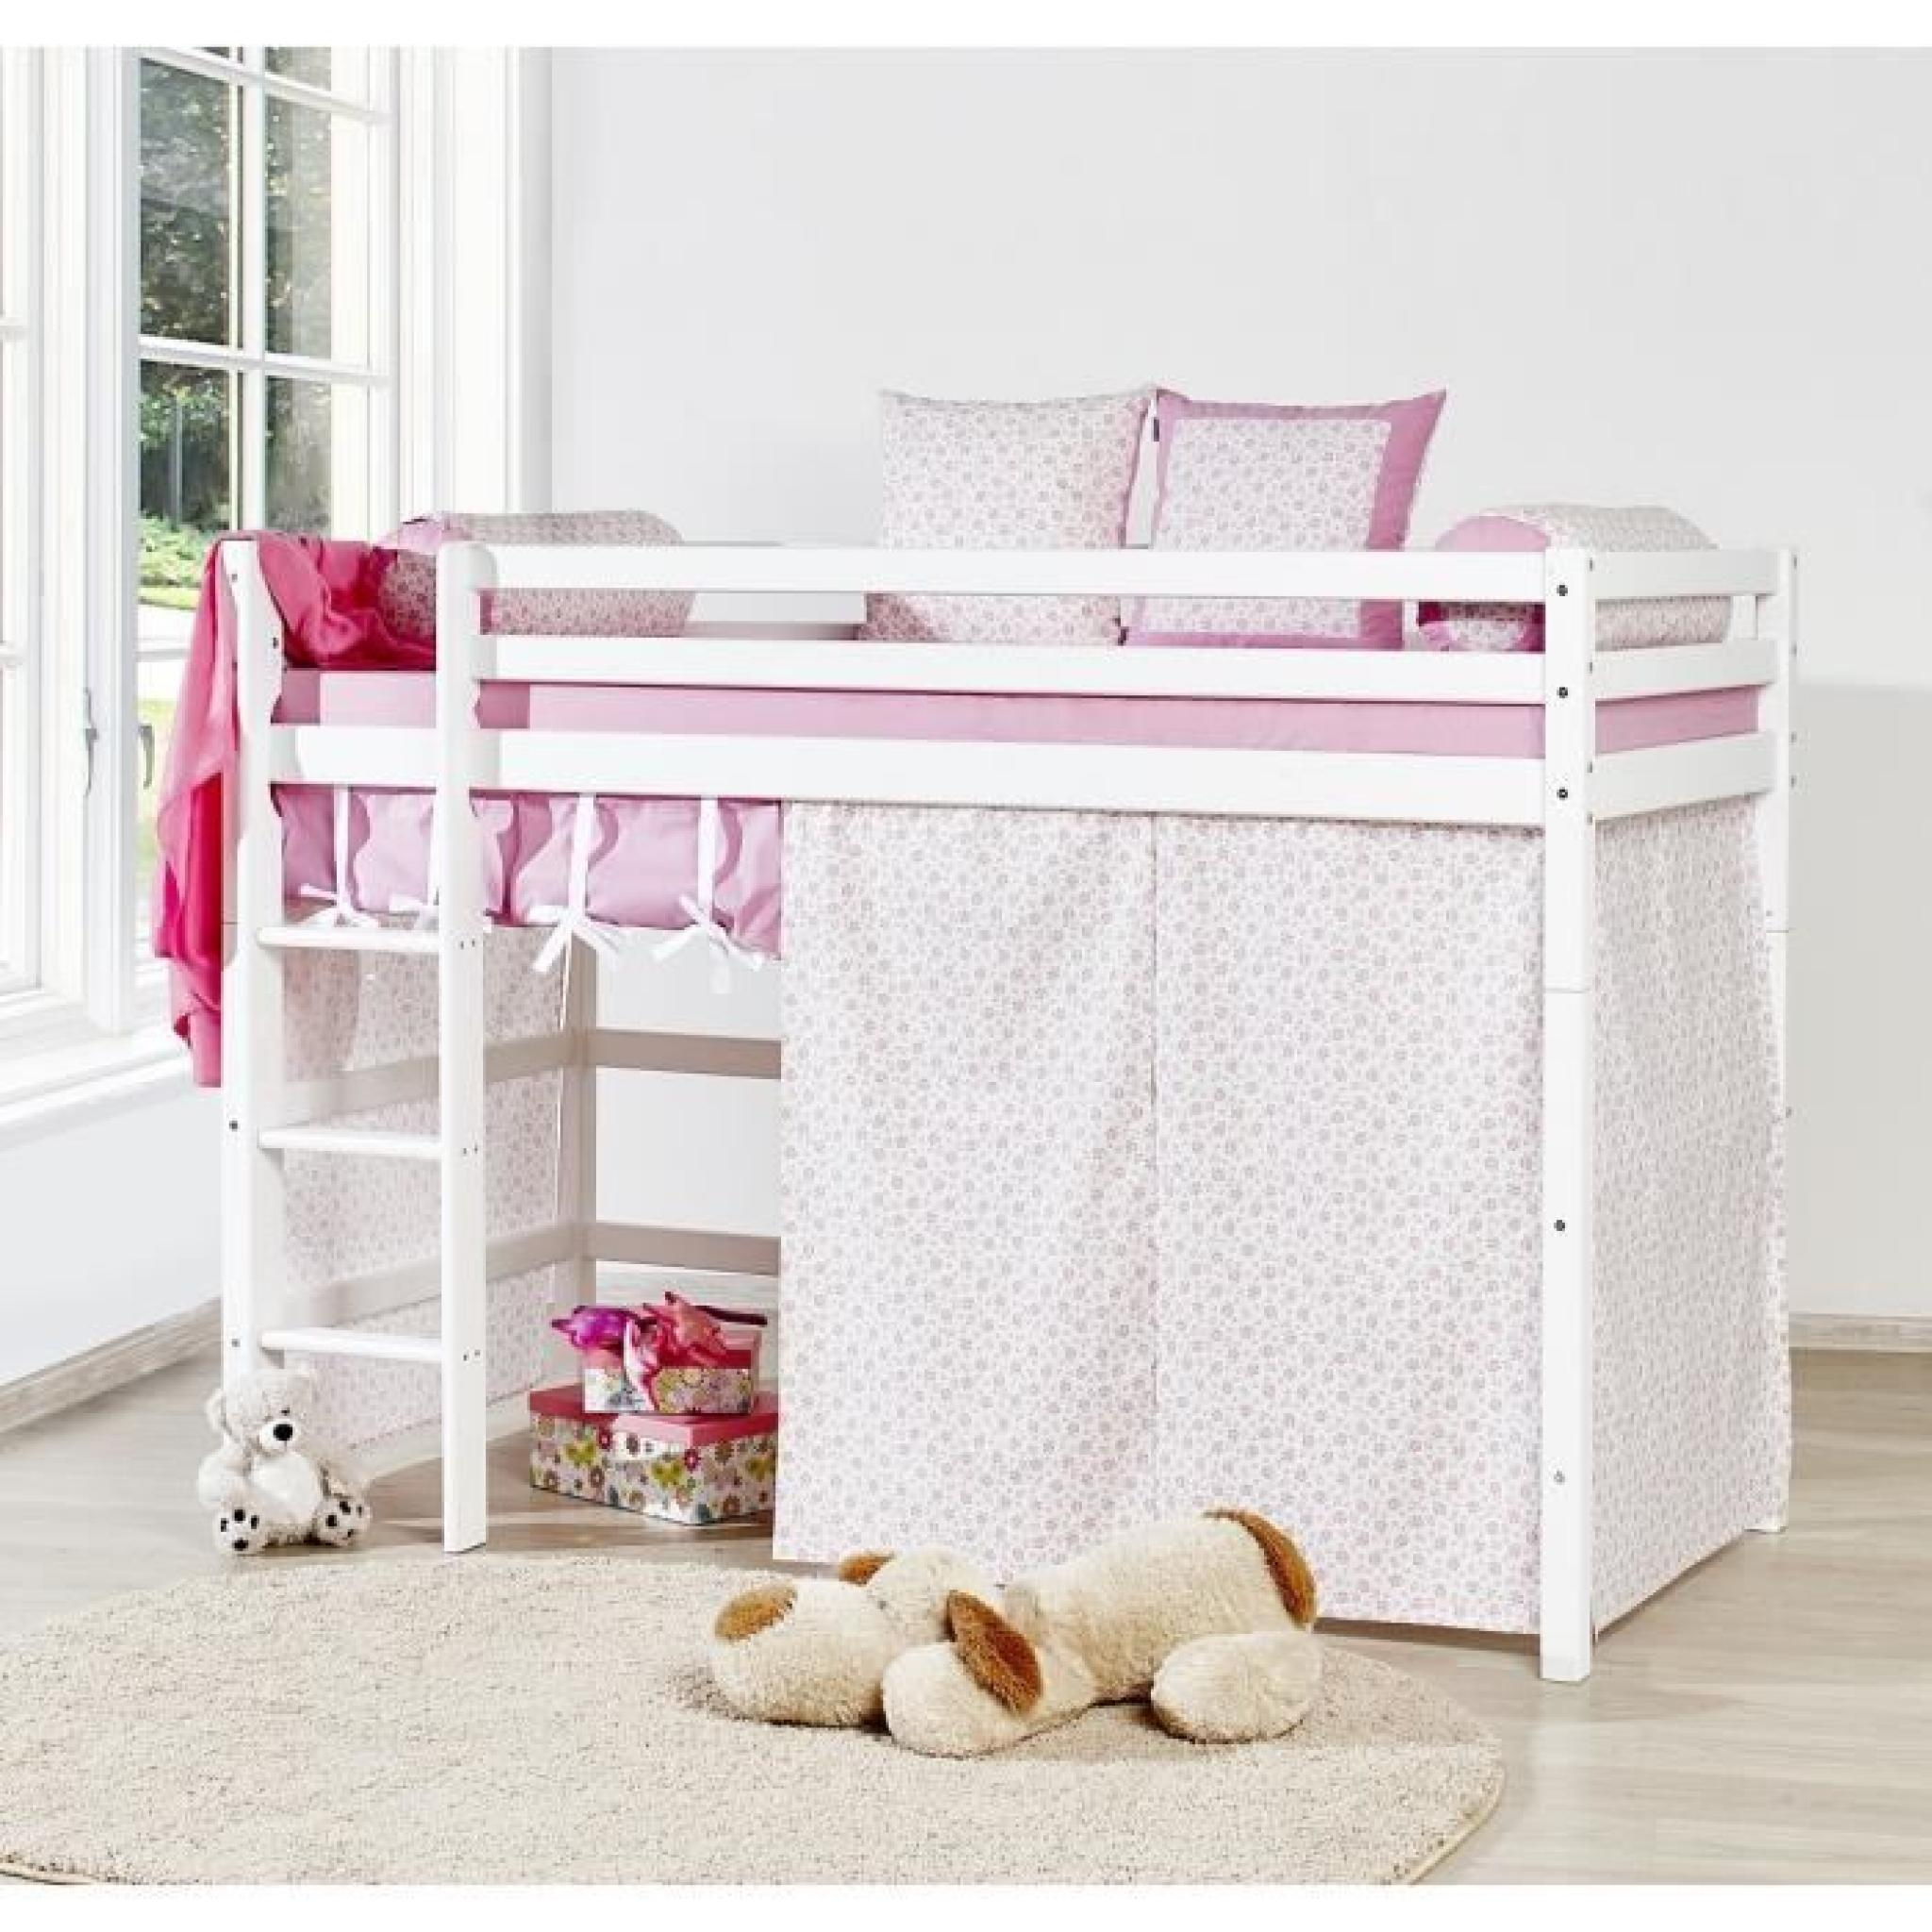 Habillage Lit Superposé Loop Princesse Lit Superposé Enfant 90x200cm Blanc